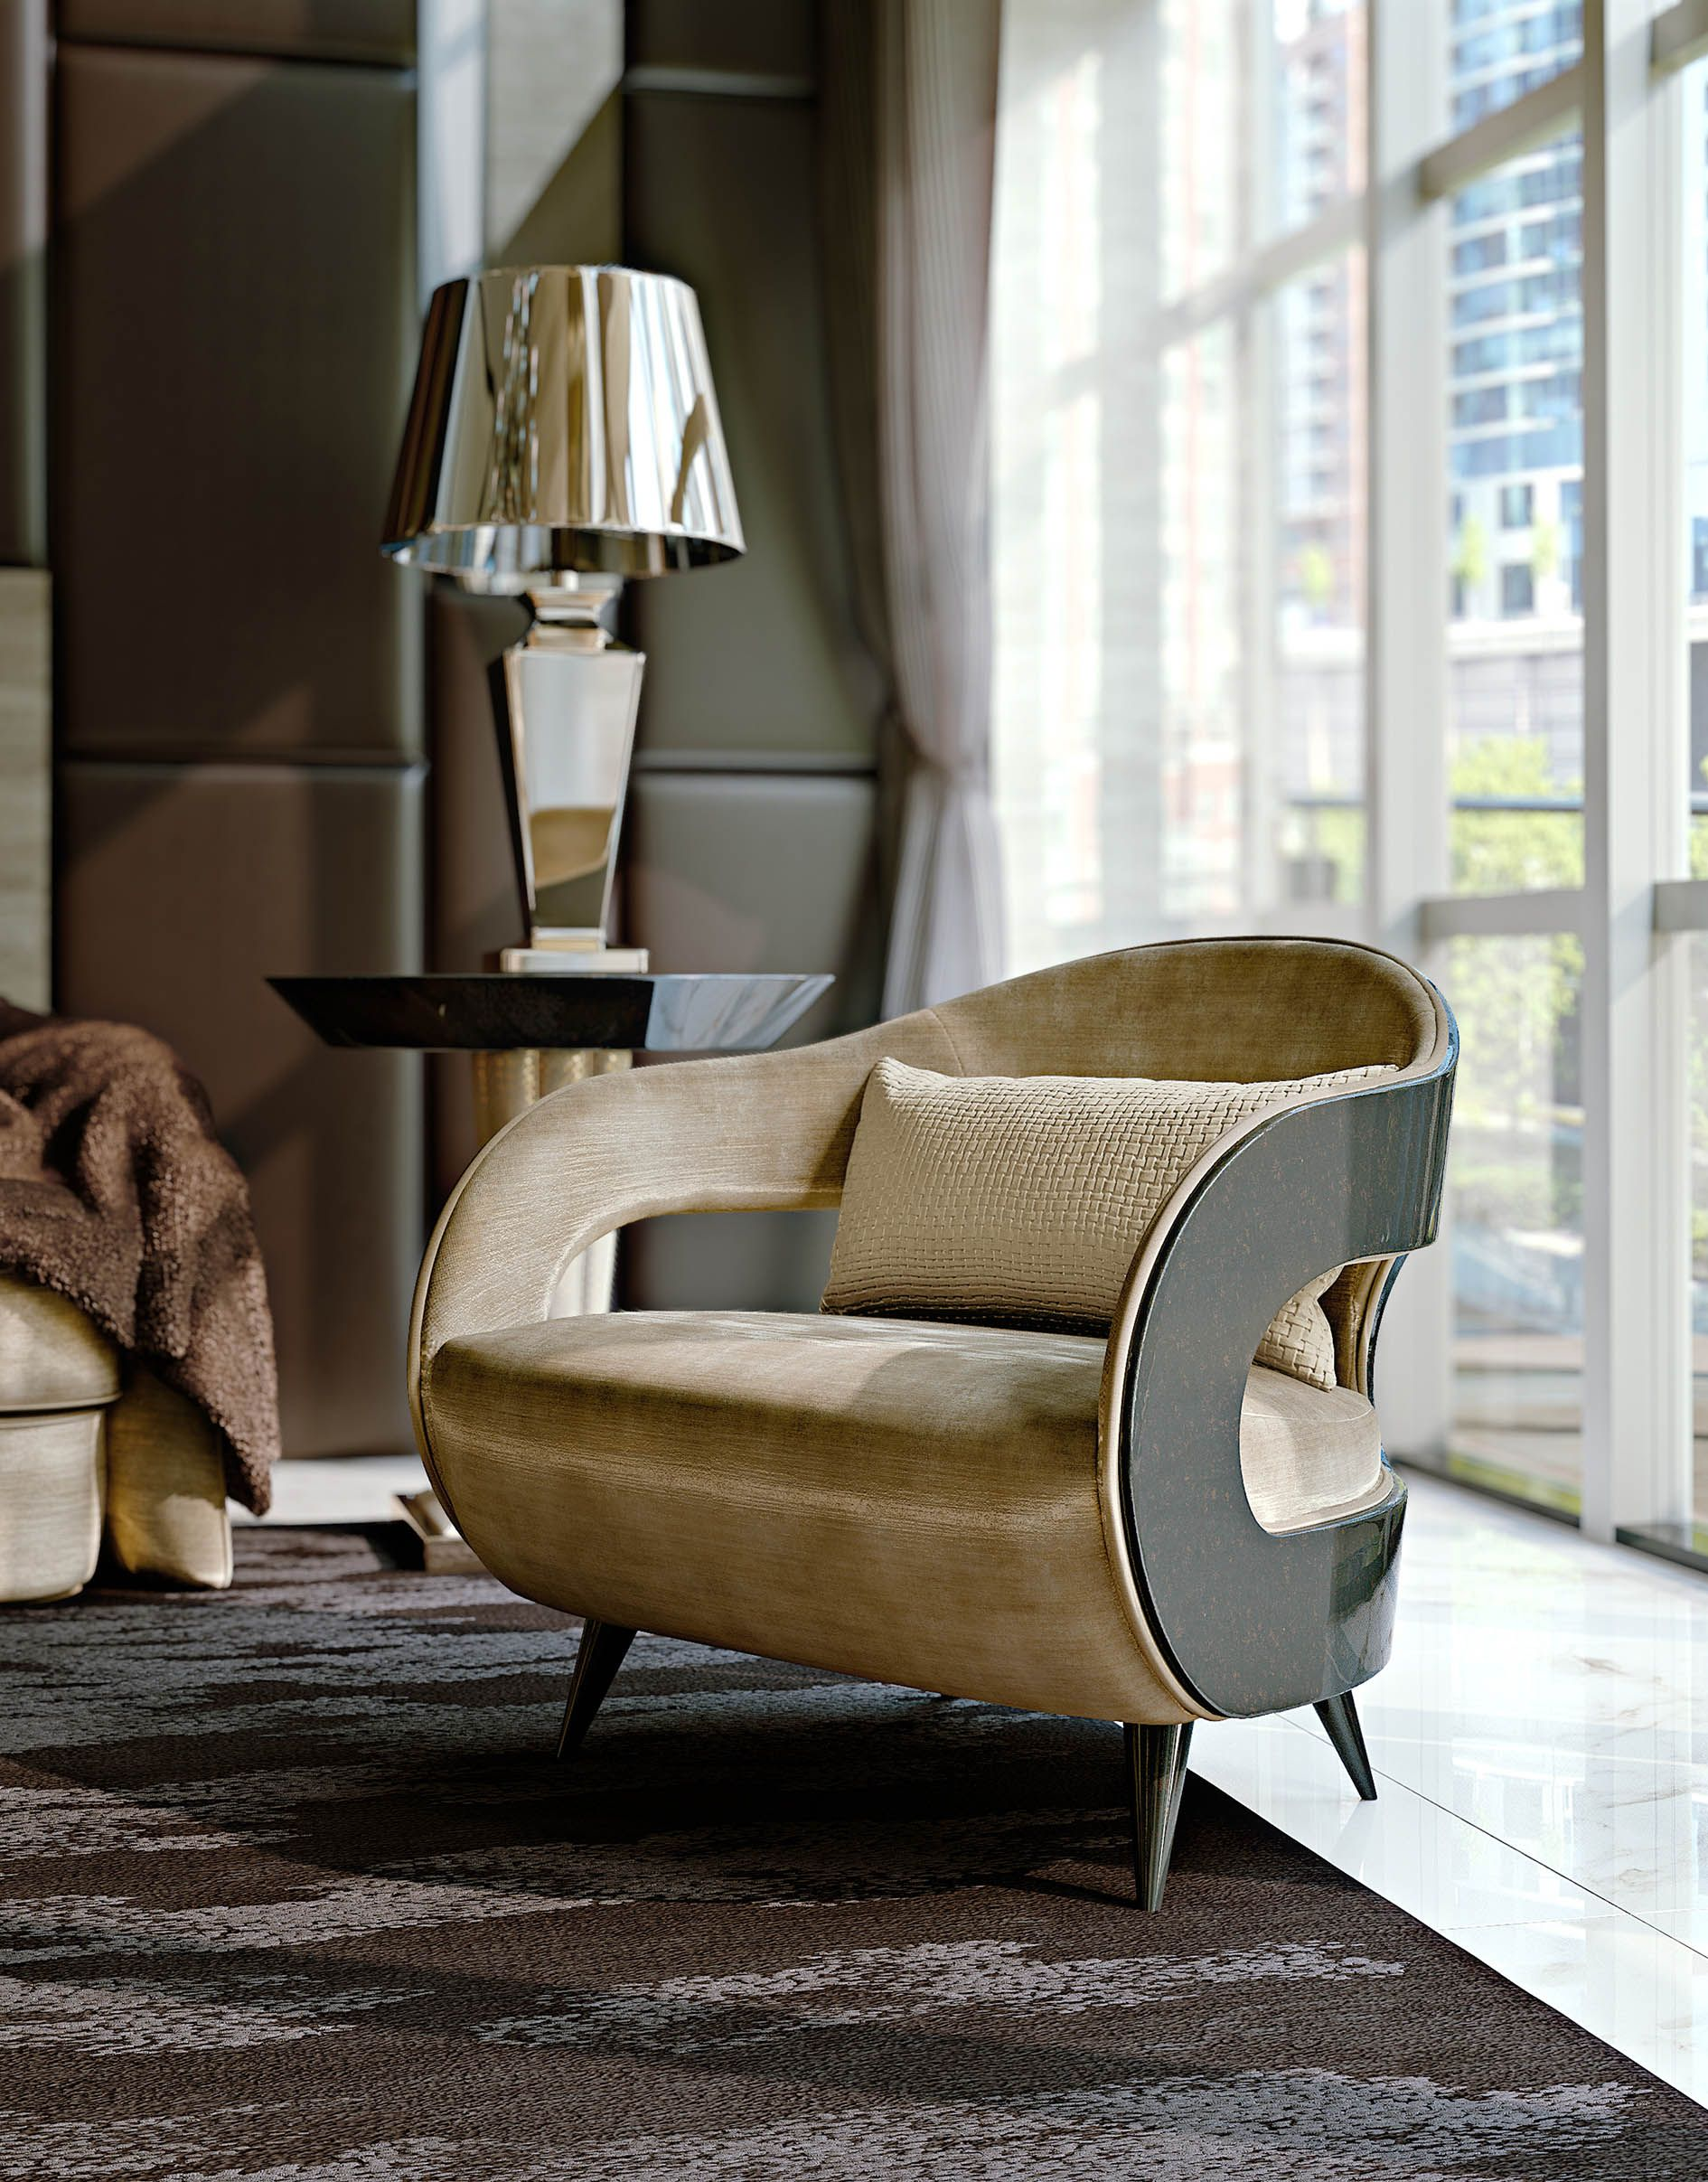 Italian Contemporary Sofas Italian Furniture For Exclusive And Modern Design Modern